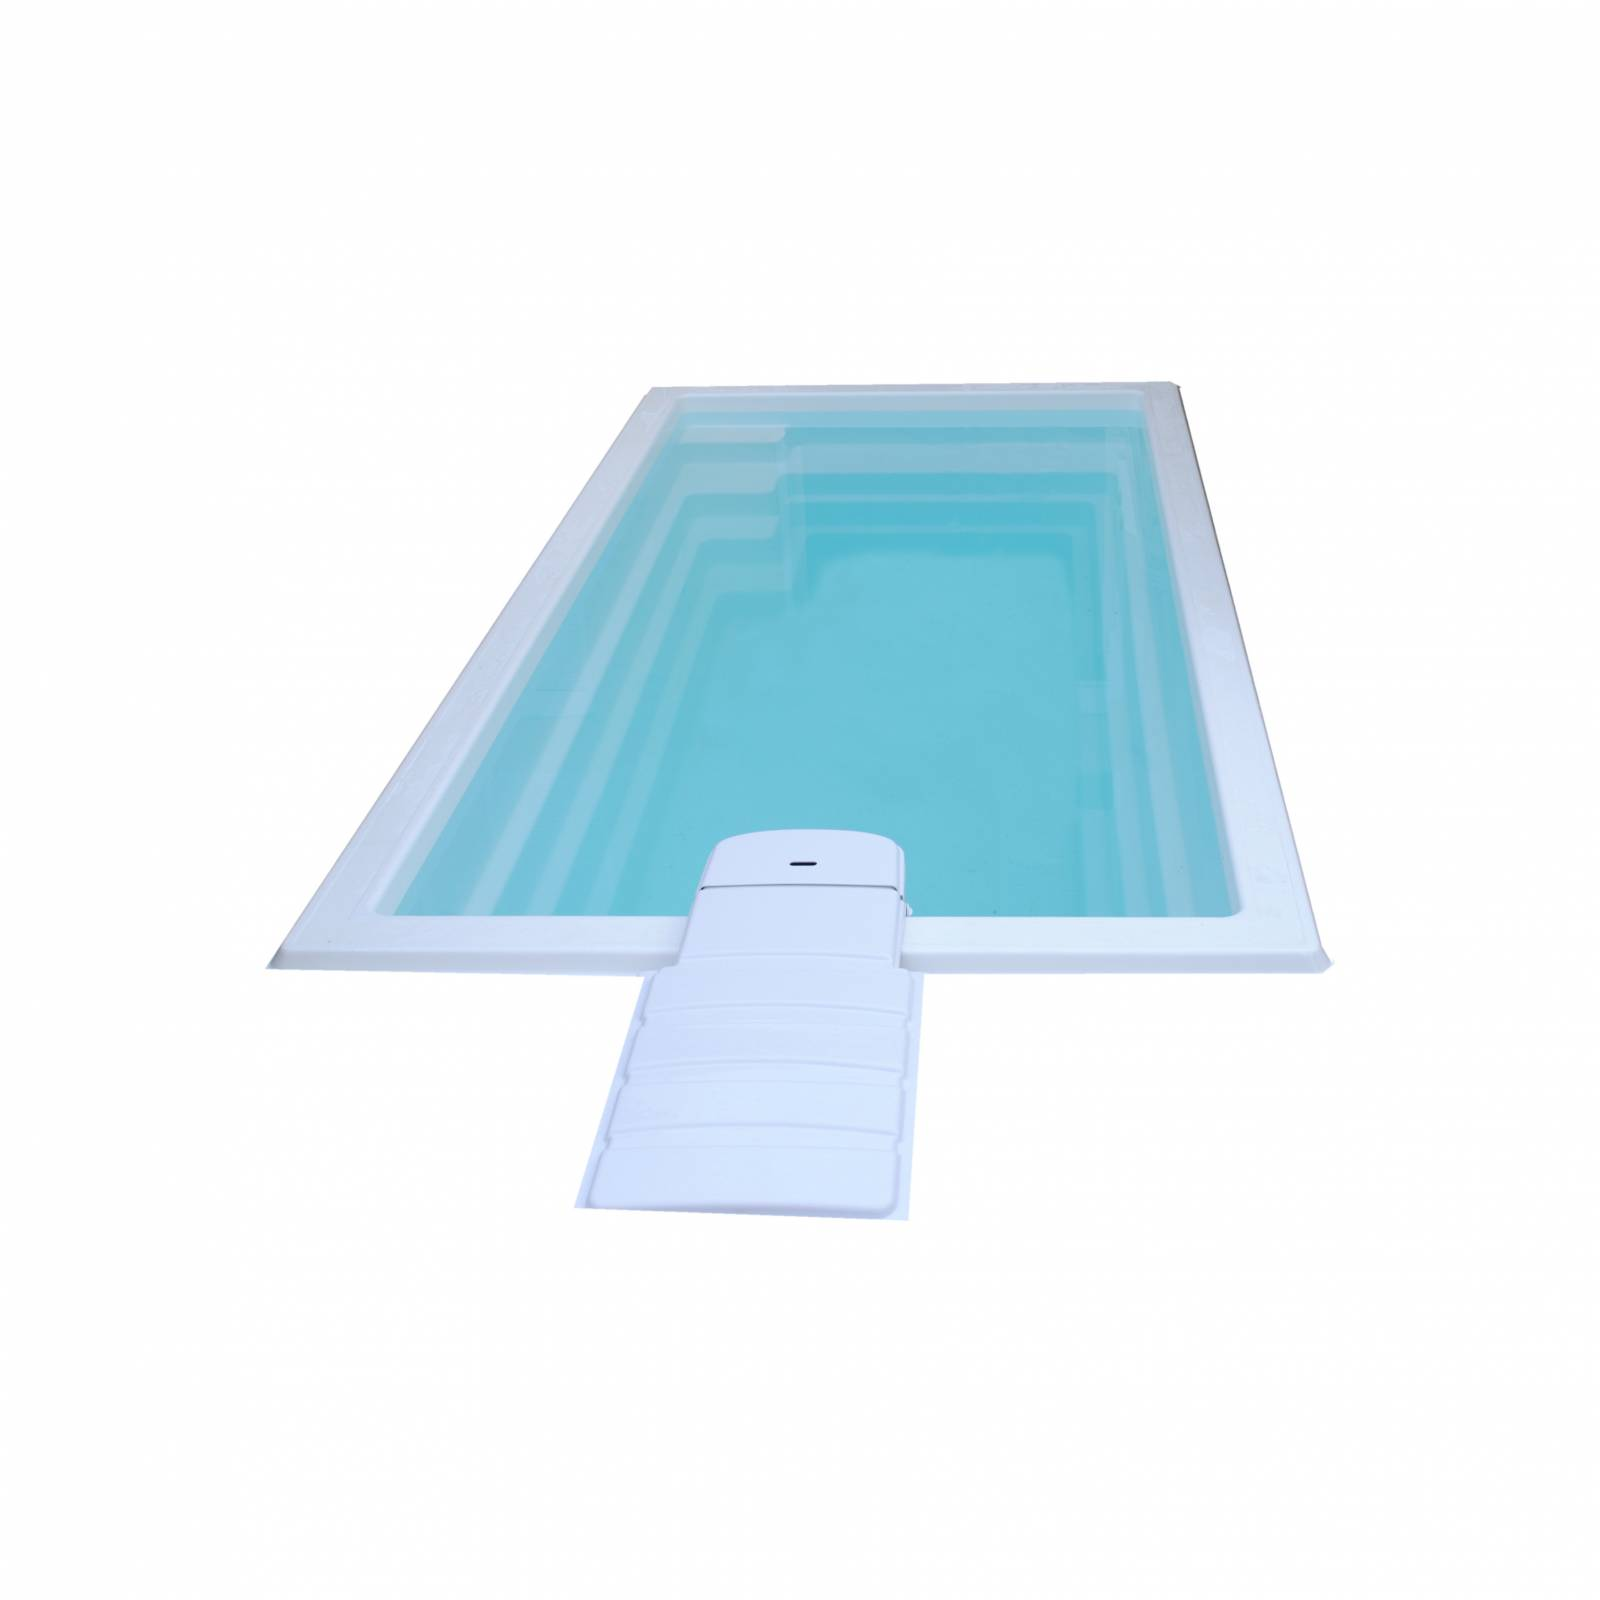 mini piscine coque polyester de moins de 10m2 avec bloc. Black Bedroom Furniture Sets. Home Design Ideas